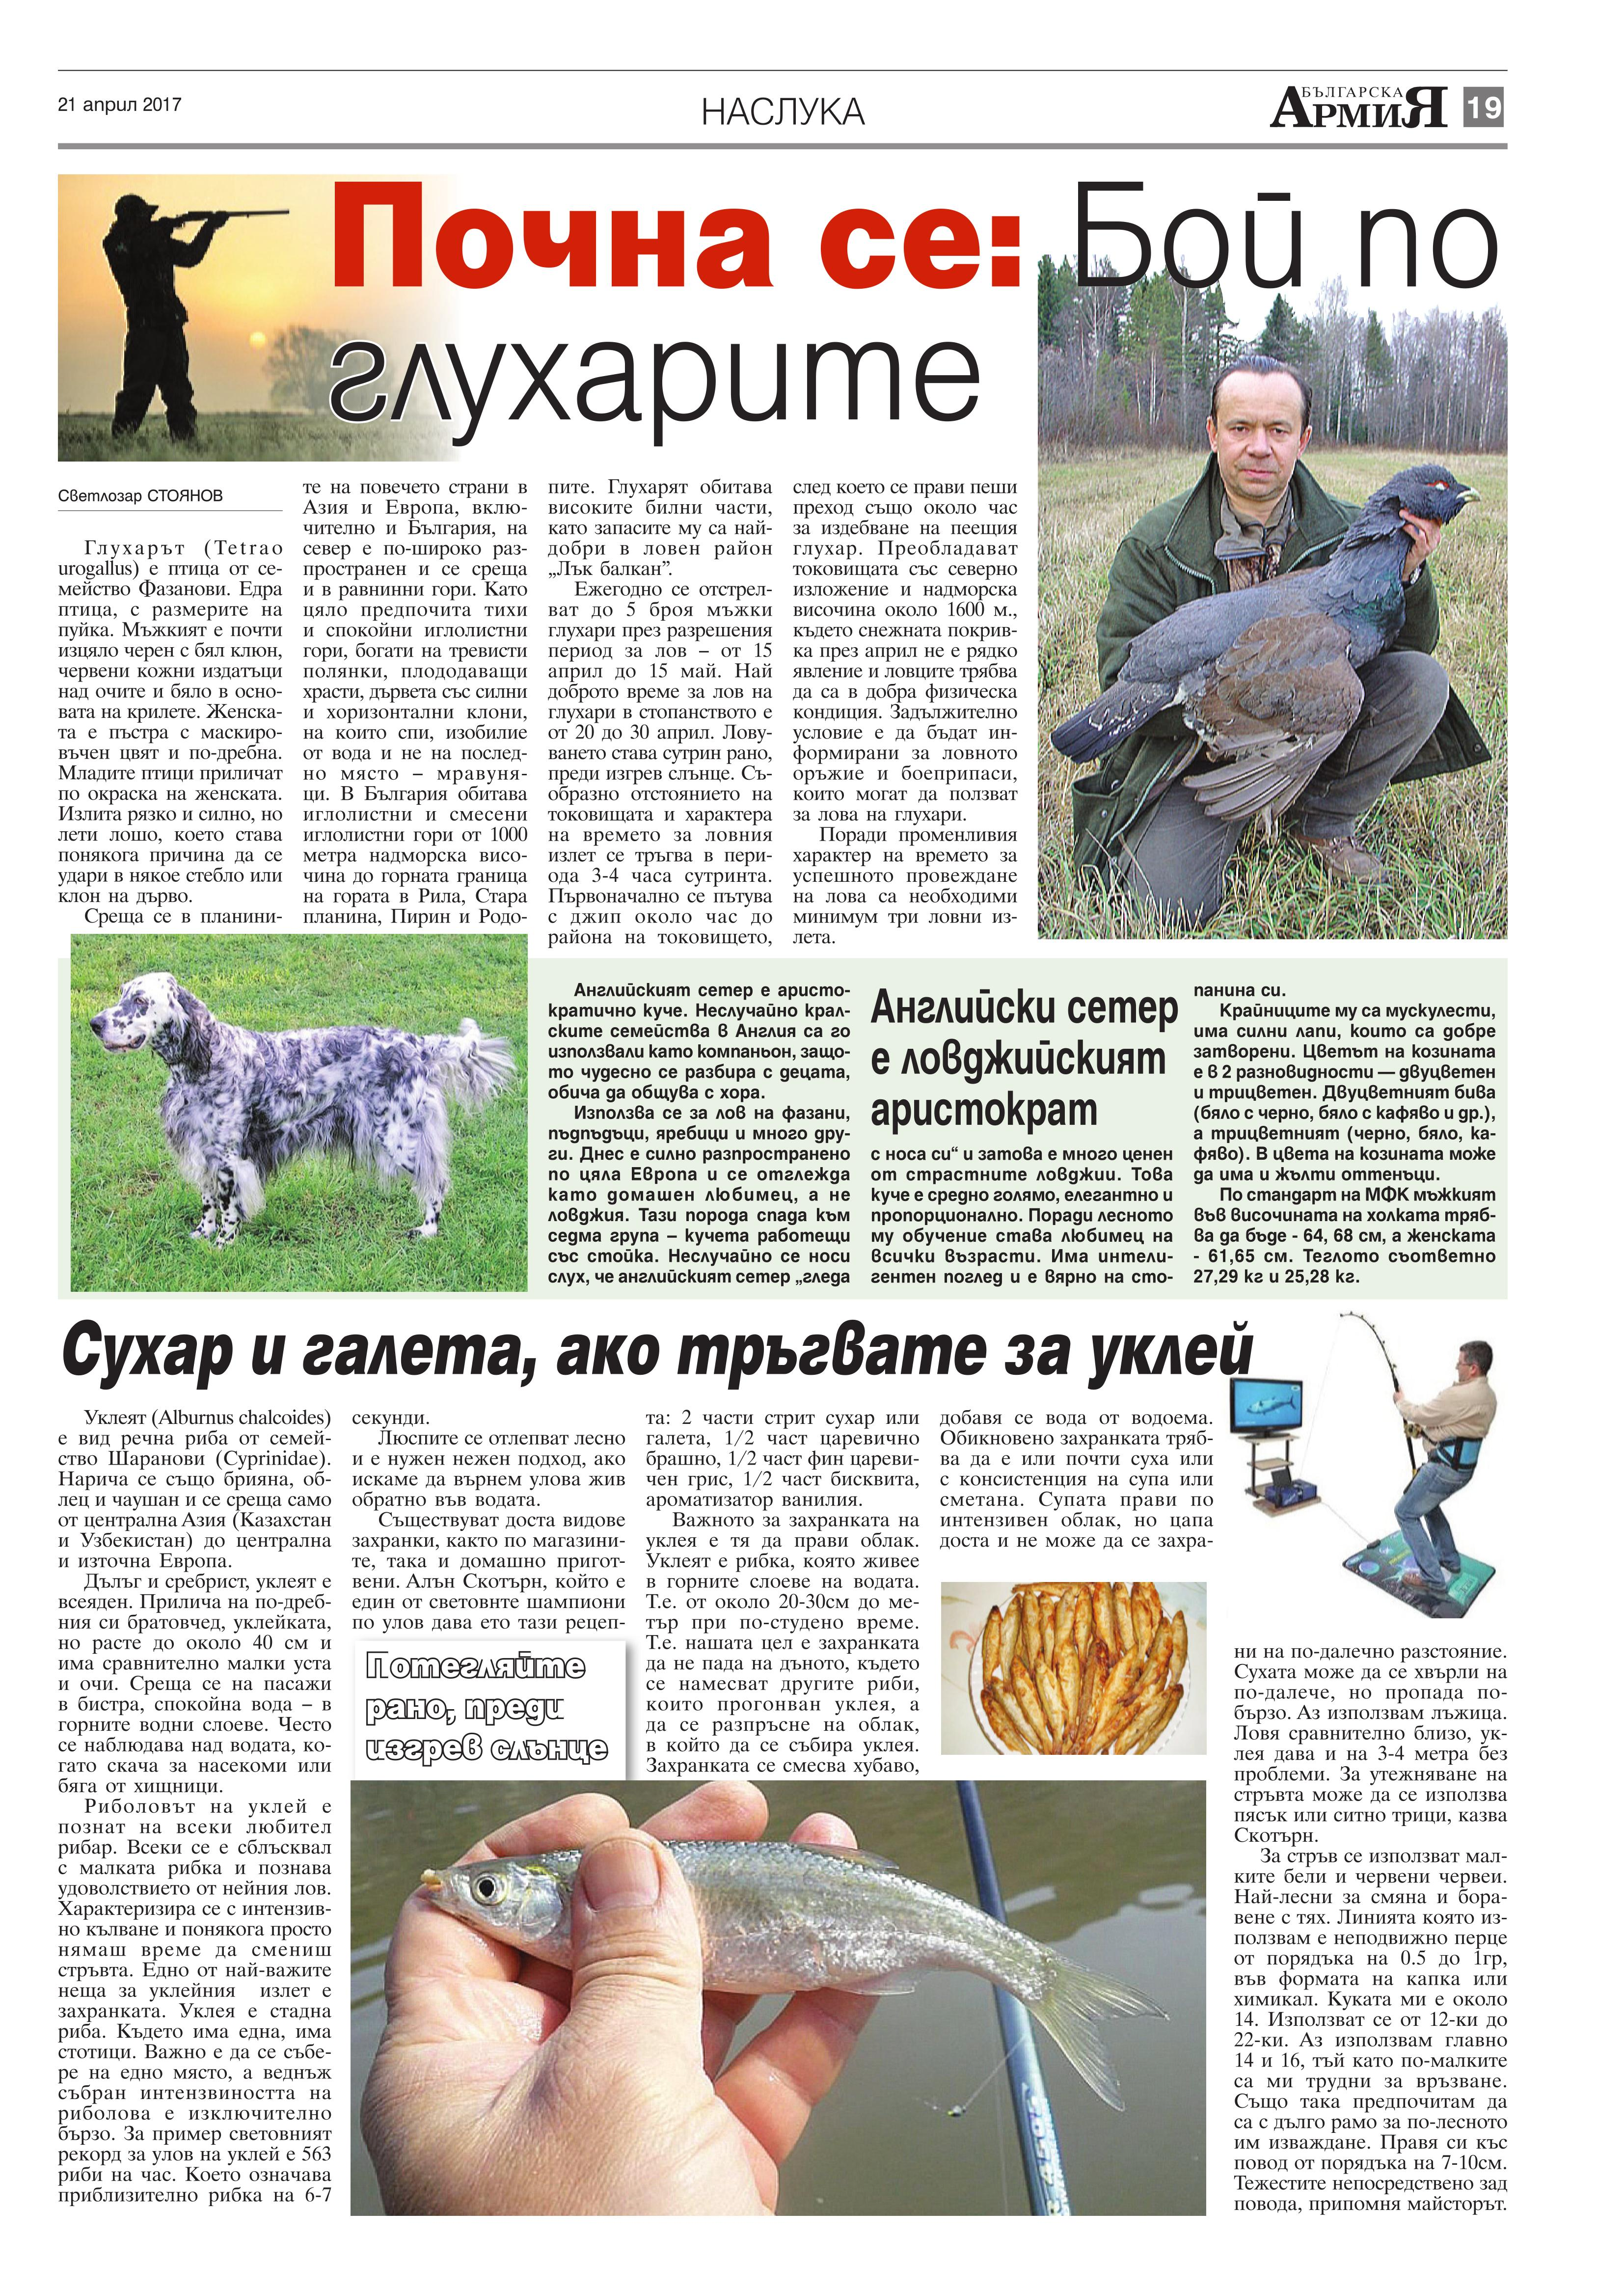 https://www.armymedia.bg/wp-content/uploads/2015/06/19.page1_-19.jpg